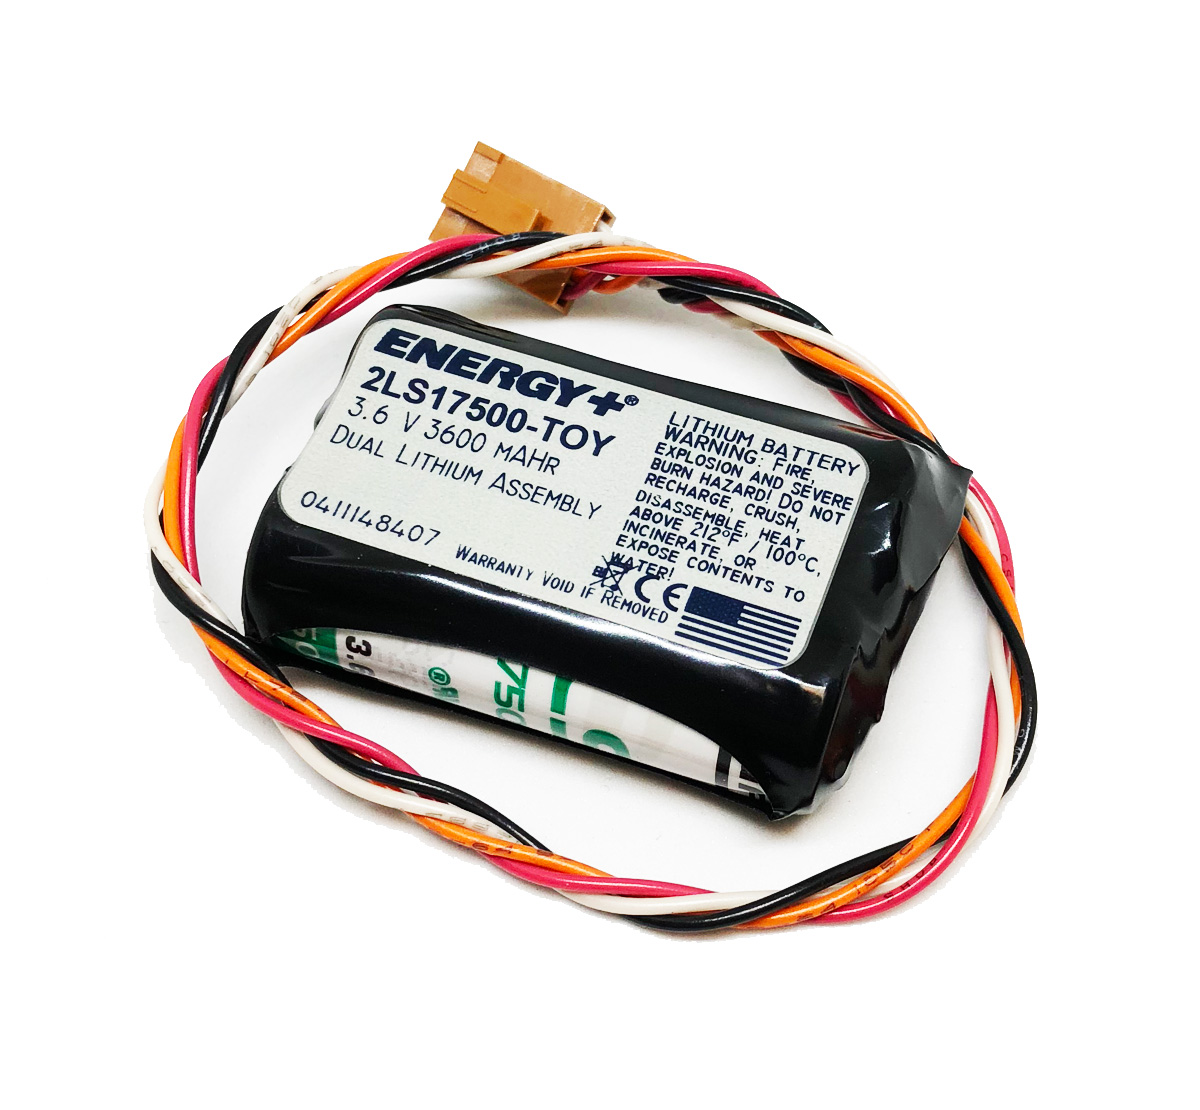 2 cell Kawasaki 4 wire Battery 2LS17500-TOY